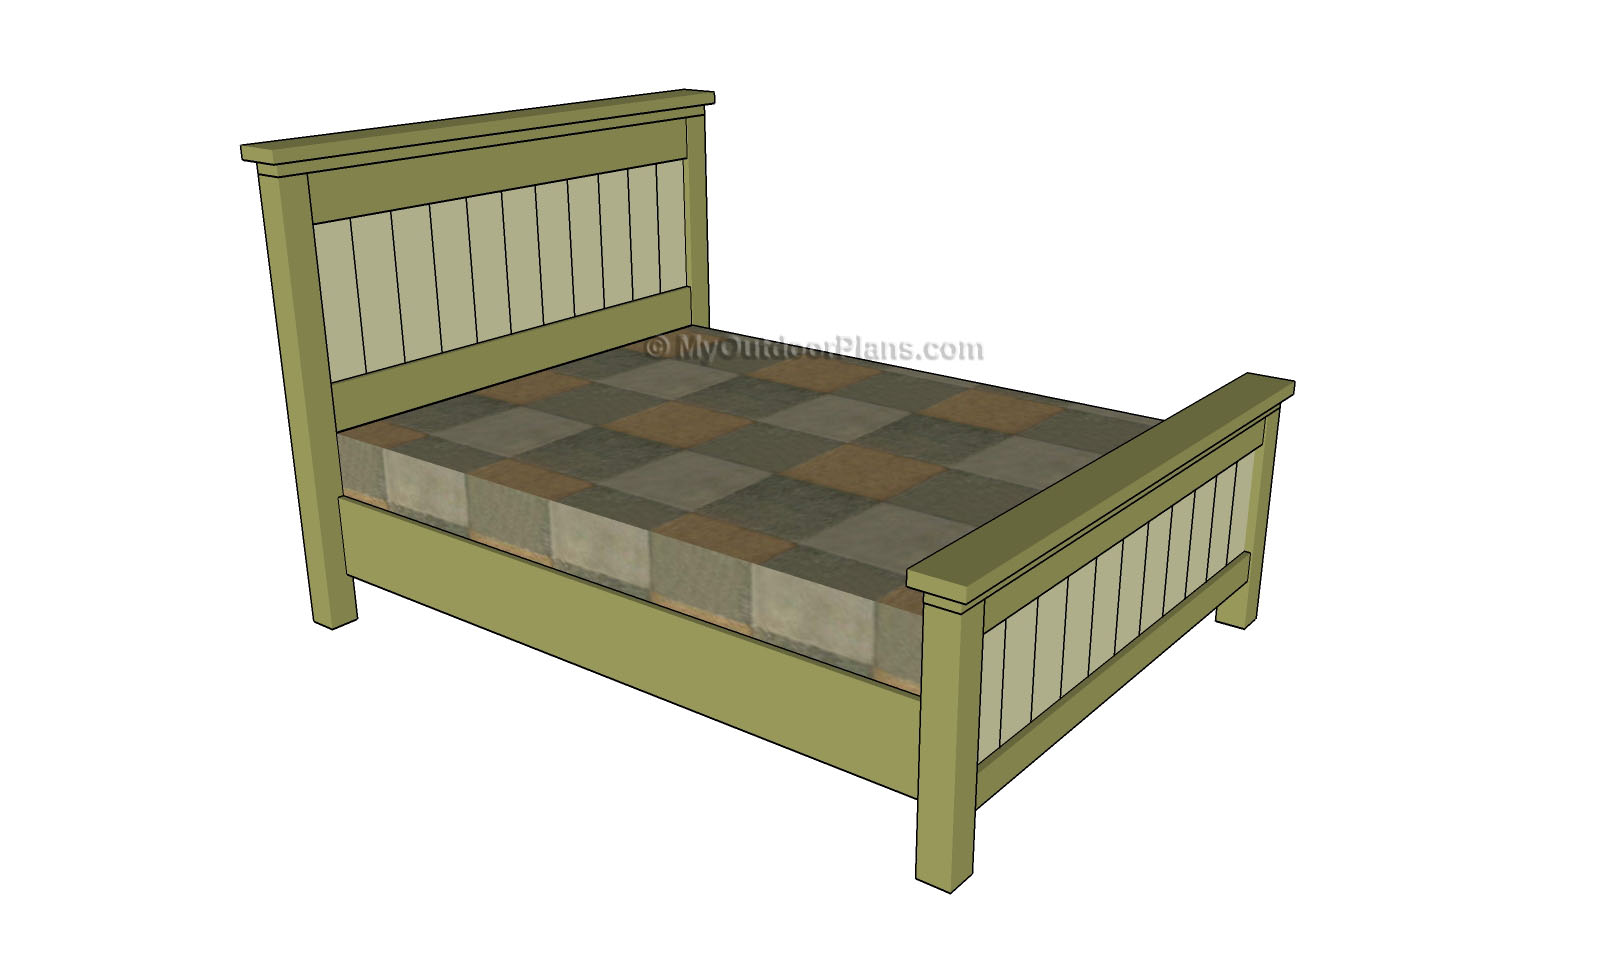 Queen size bed plans free outdoor plans diy shed for Queen size bed frame